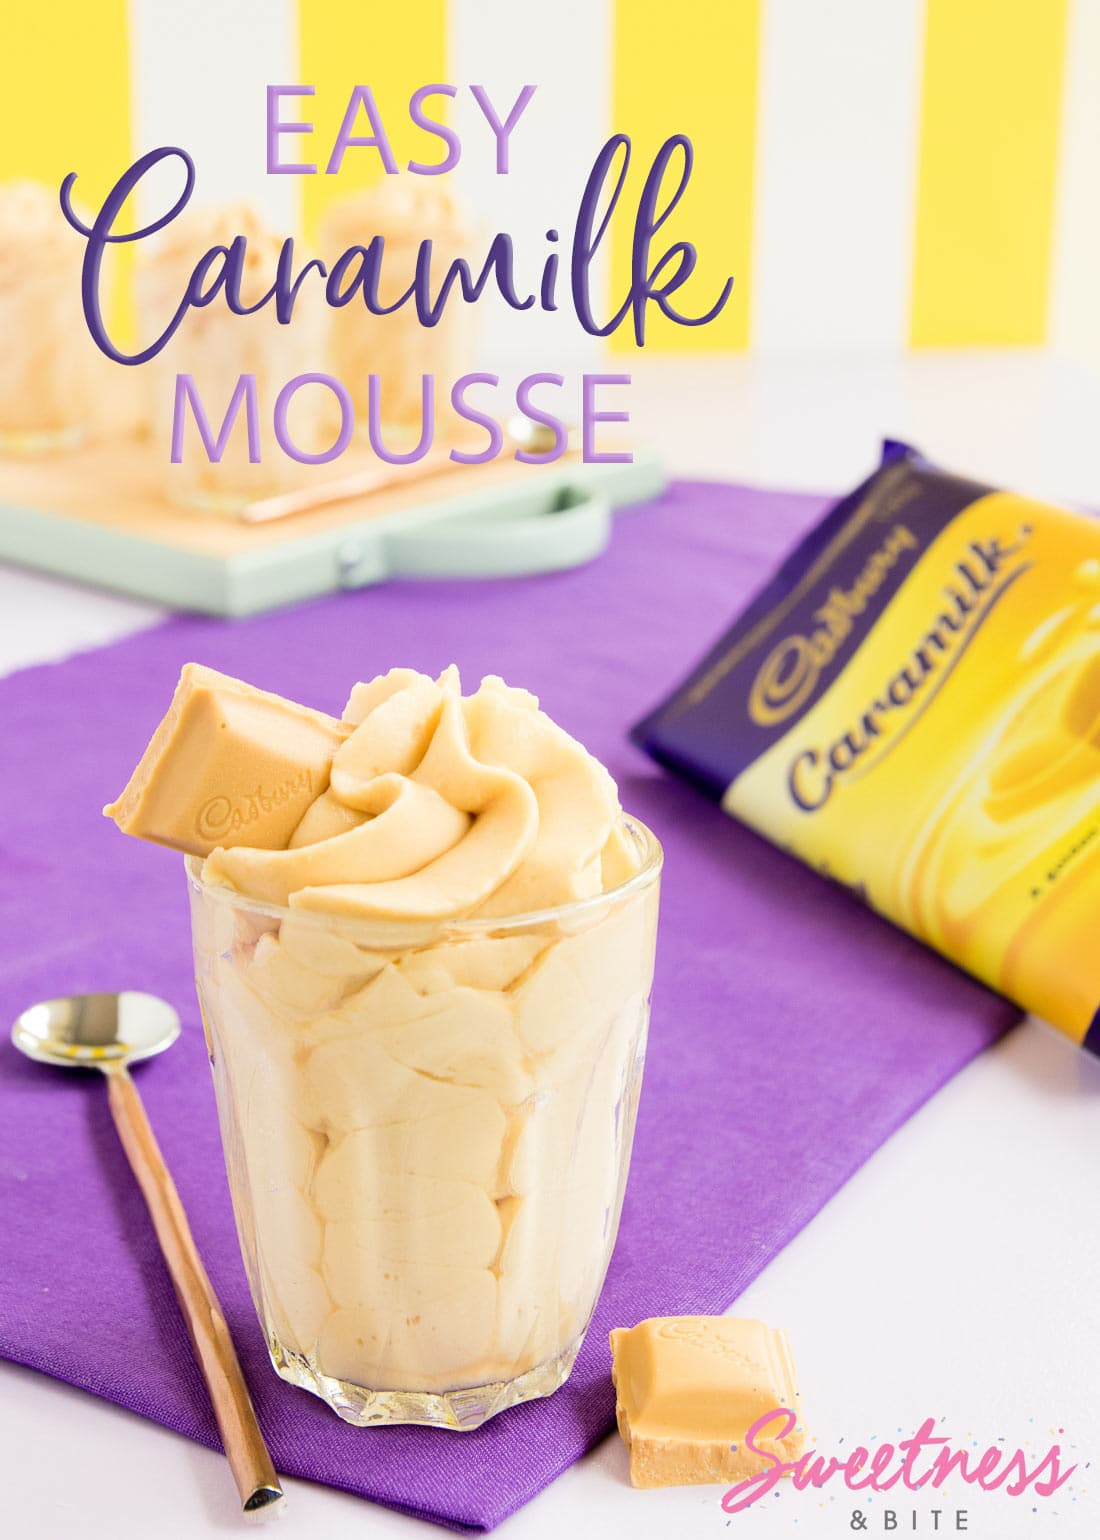 Caramilk Mousse piped in a swirl into a small glass, with a block of Caramilk chocolate in the background. Text overlay reads: Easy Caramilk Mousse.